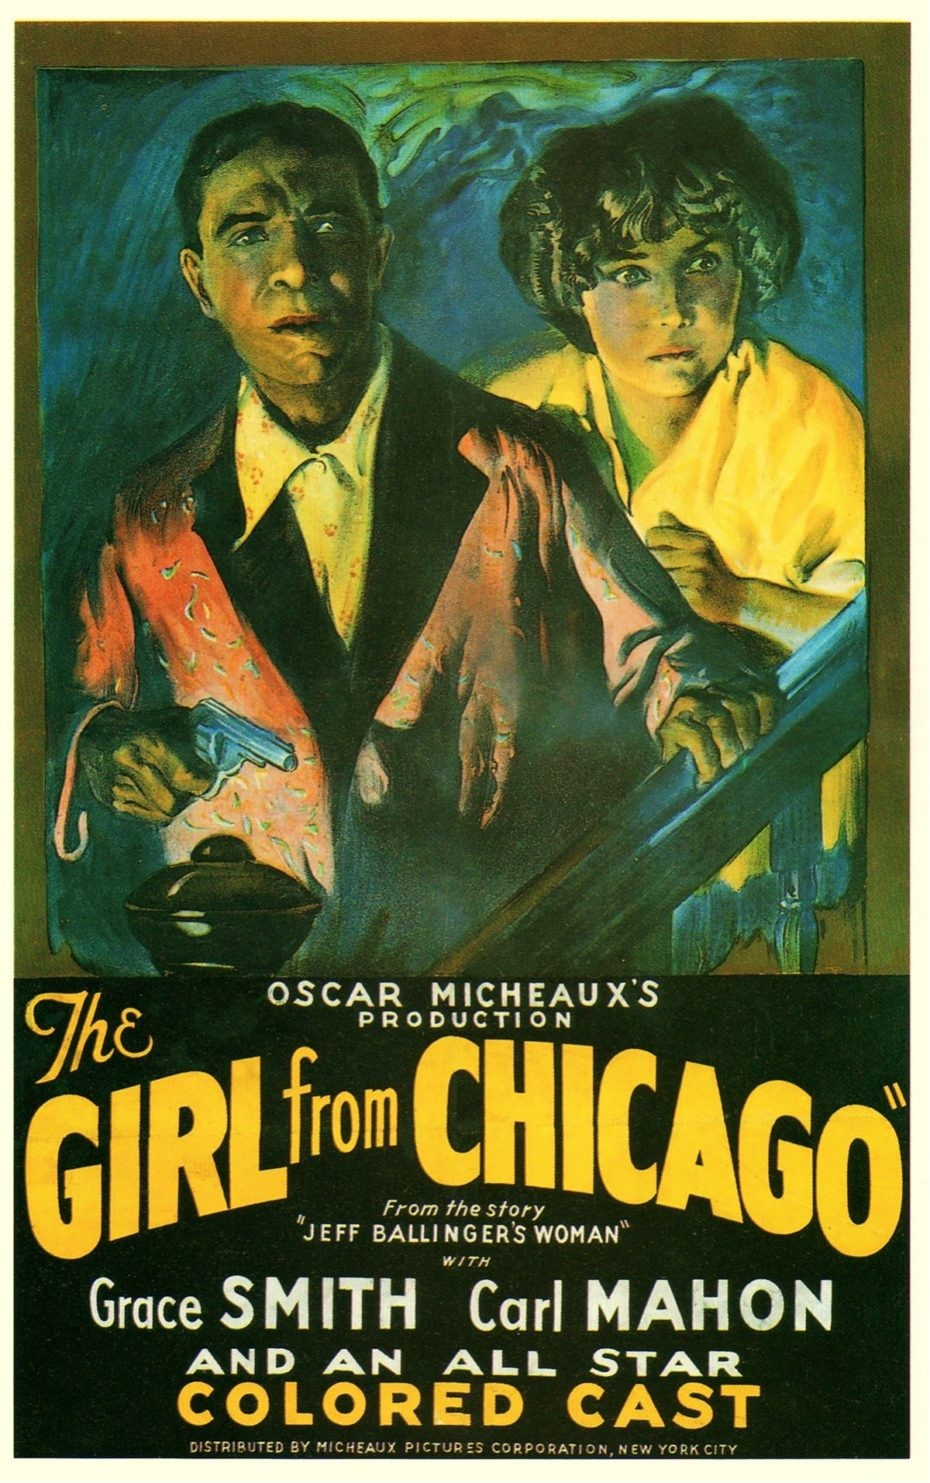 the_girl_from_chicago_poster-930x1483.jpg